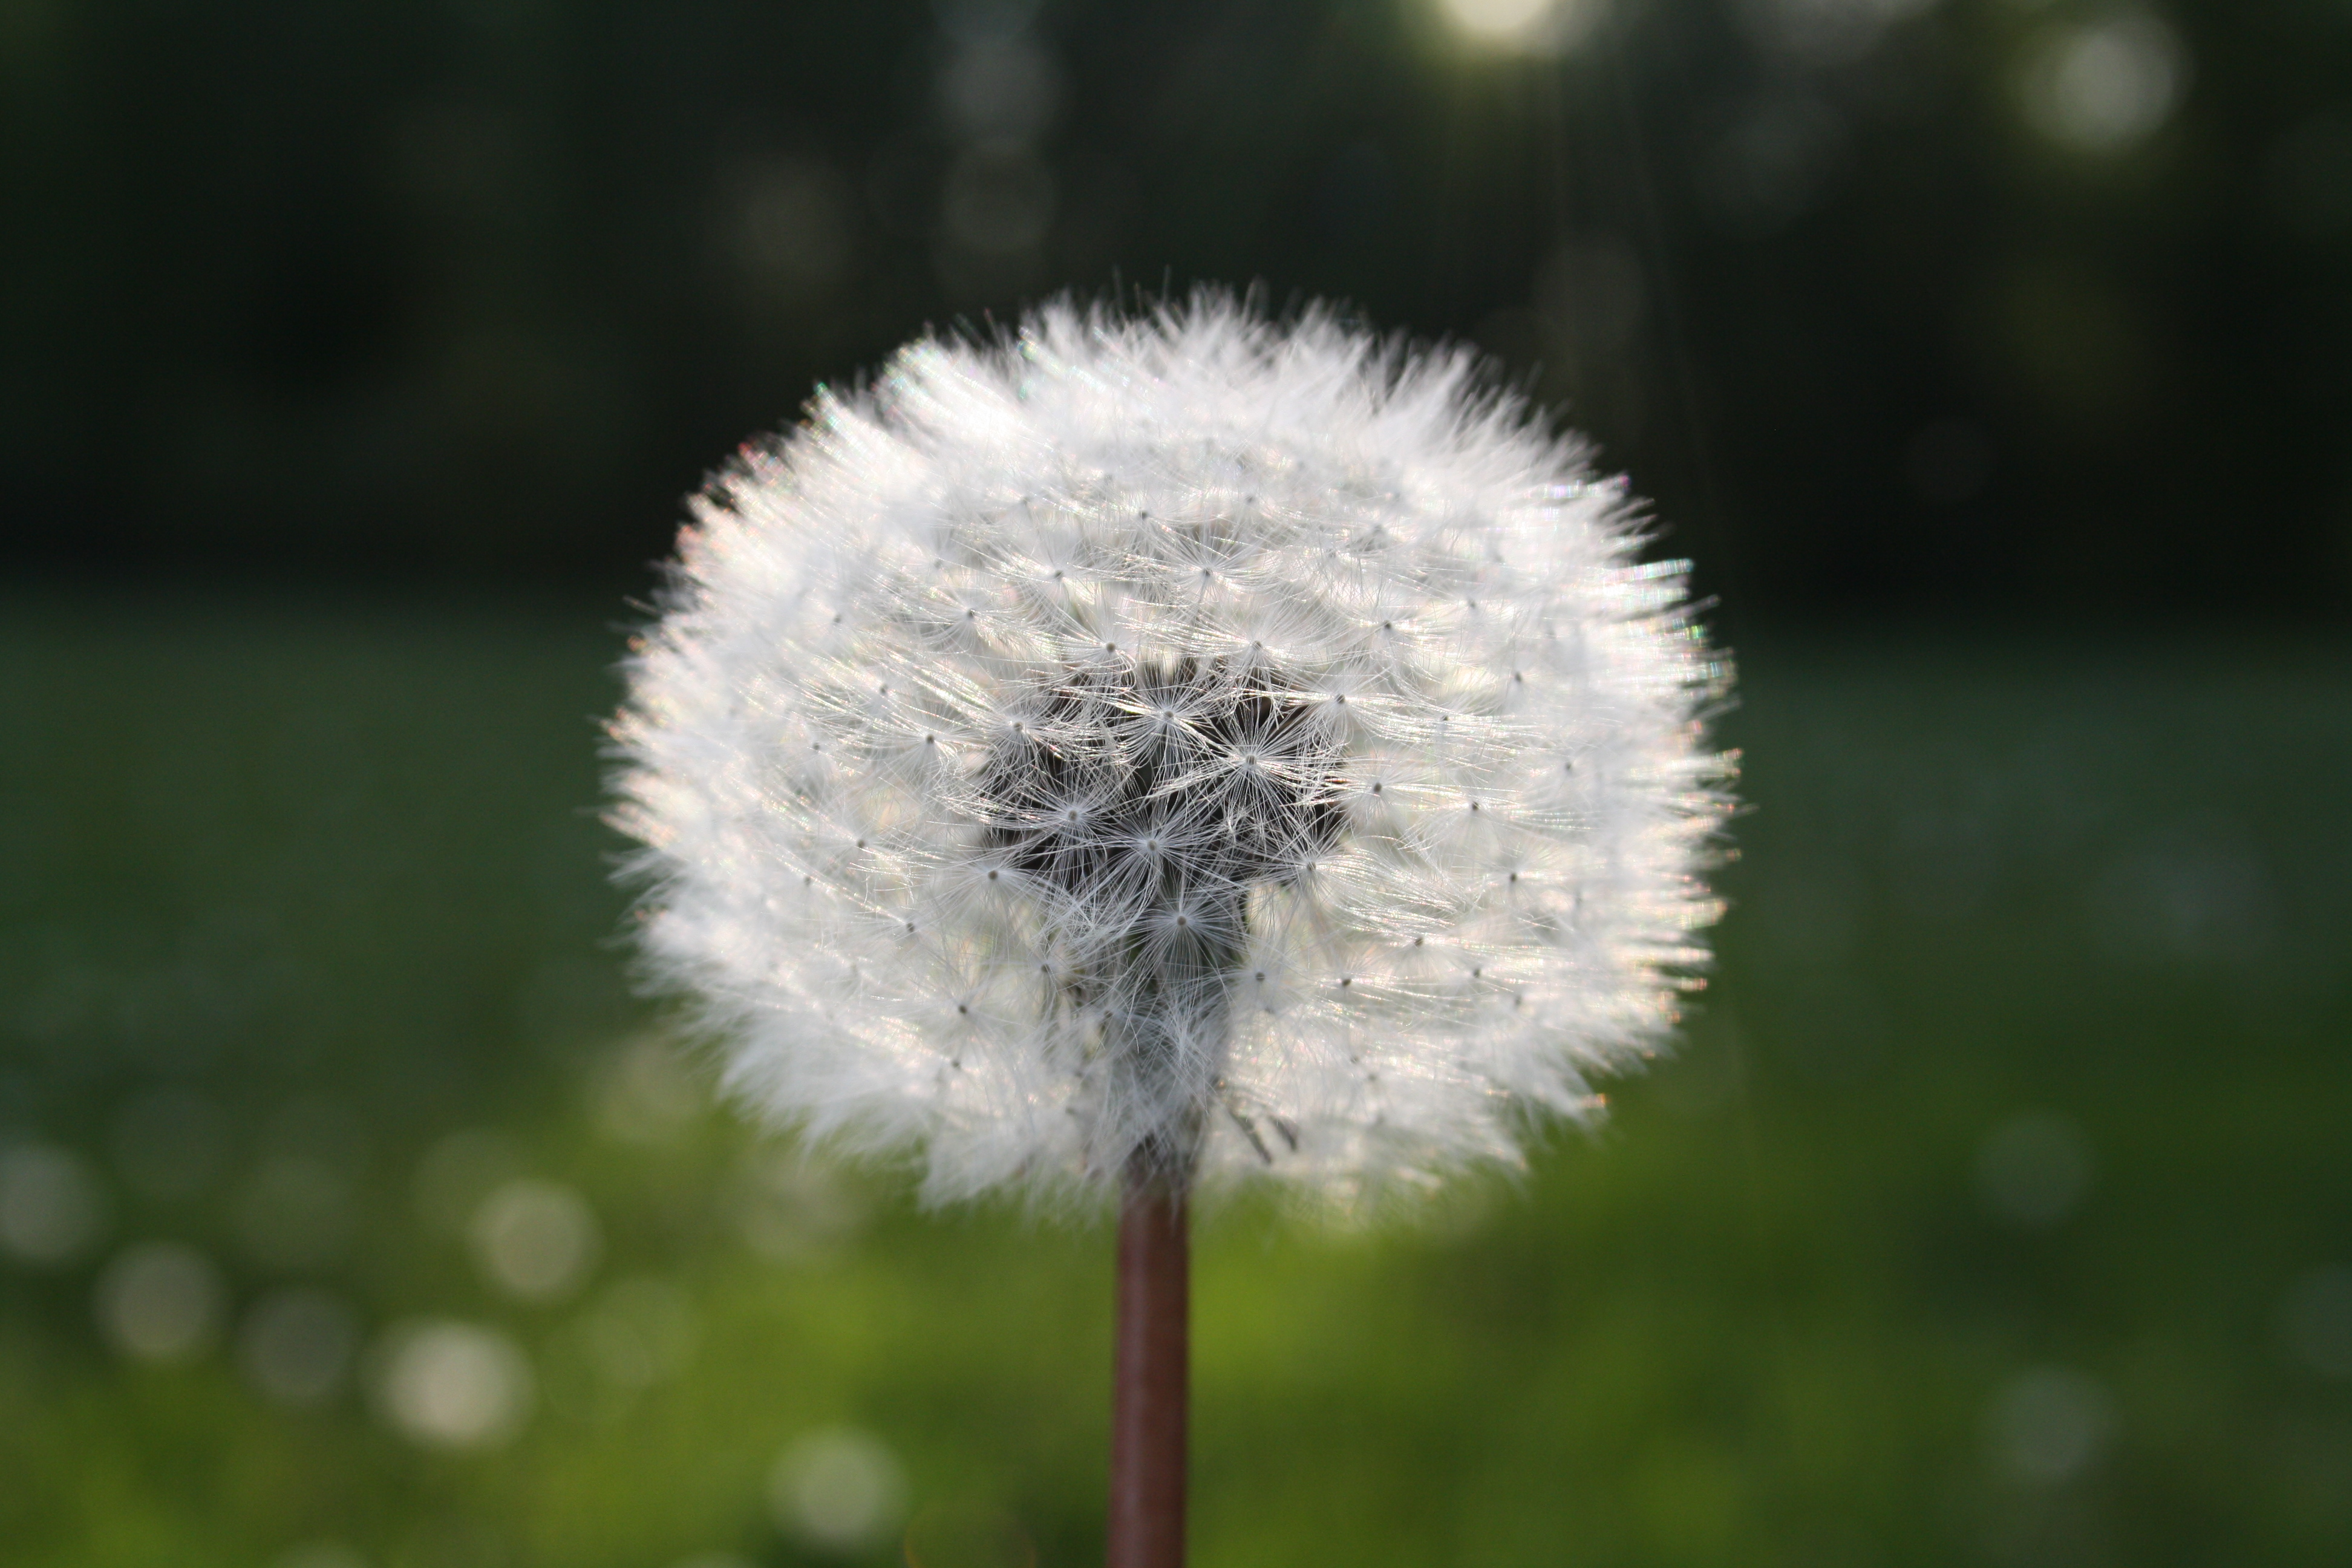 white dandelion flower in close up photograph free stock